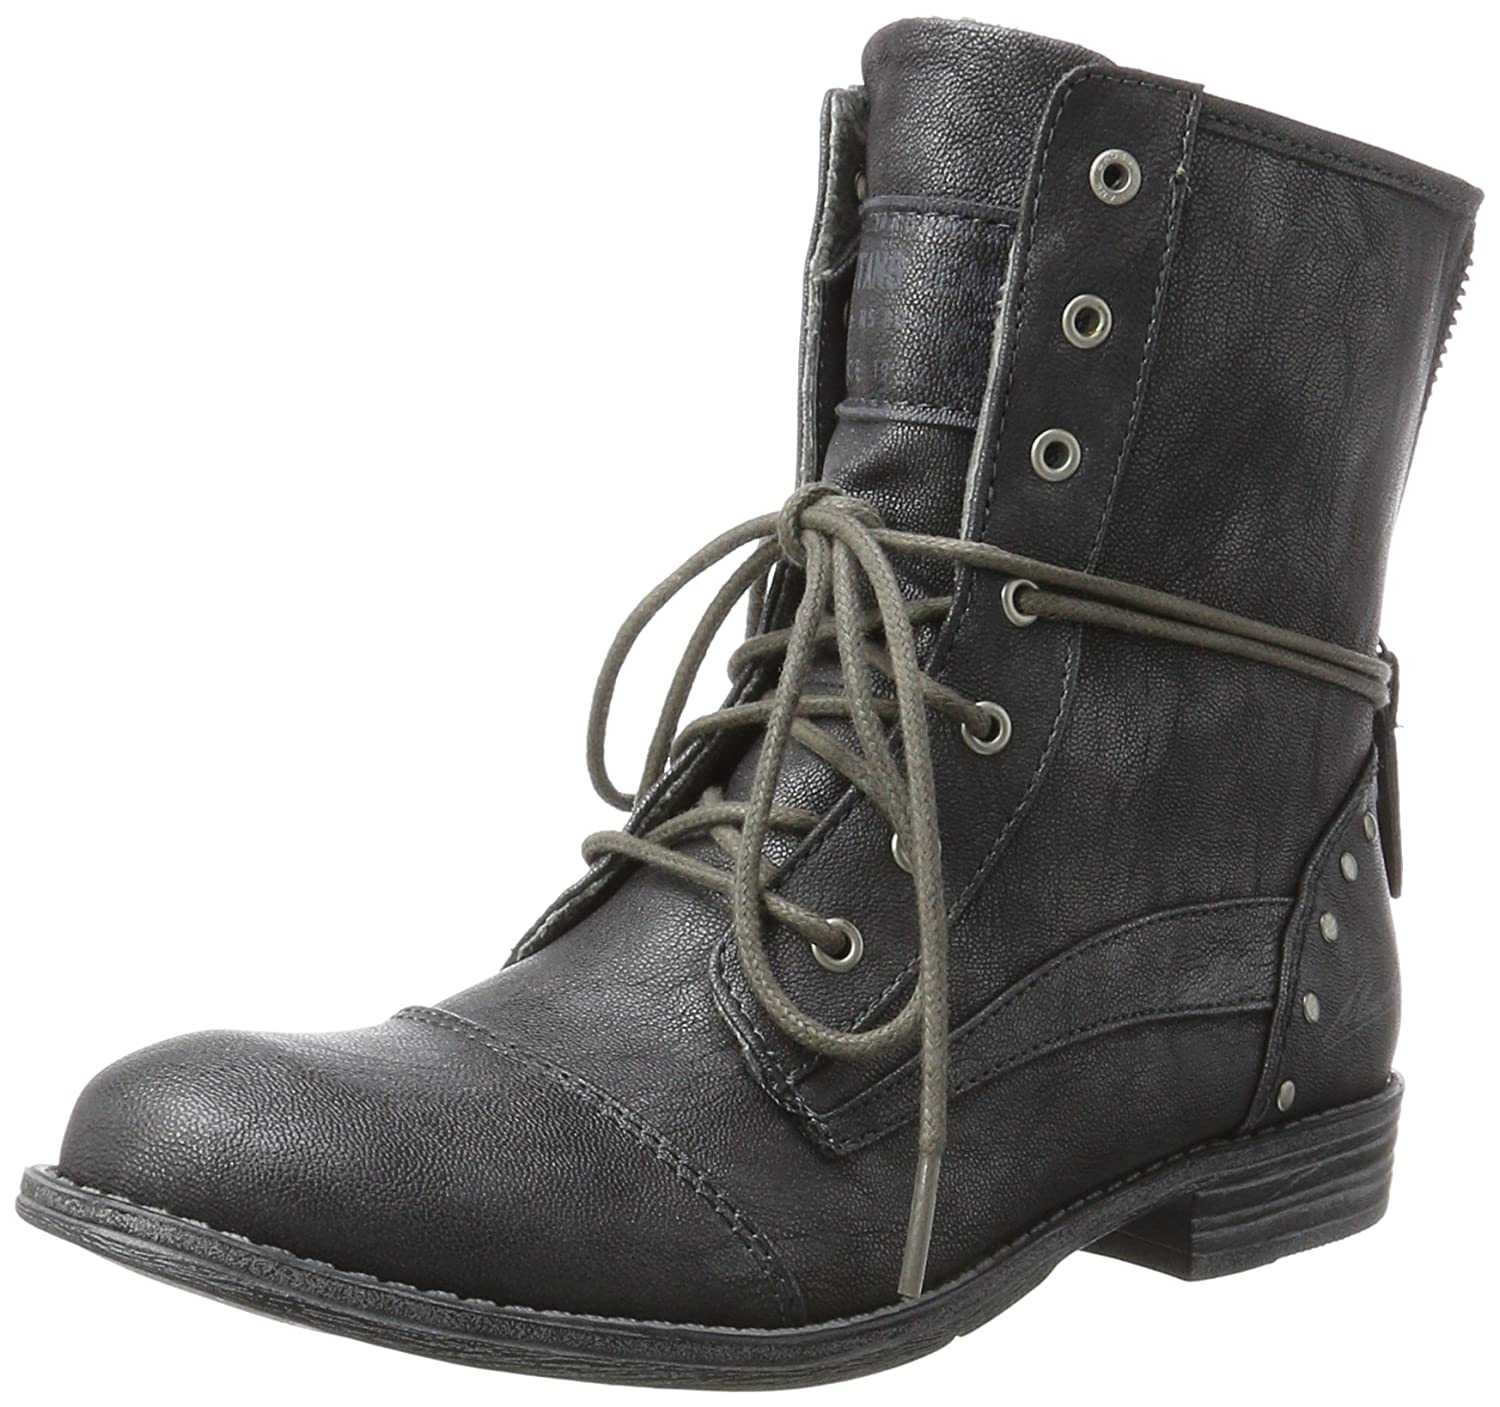 Mustang 1157-551-200, Bottes Bottes Femme Gris Gris B001949G88 (Stein) 32f9a27 - boatplans.space